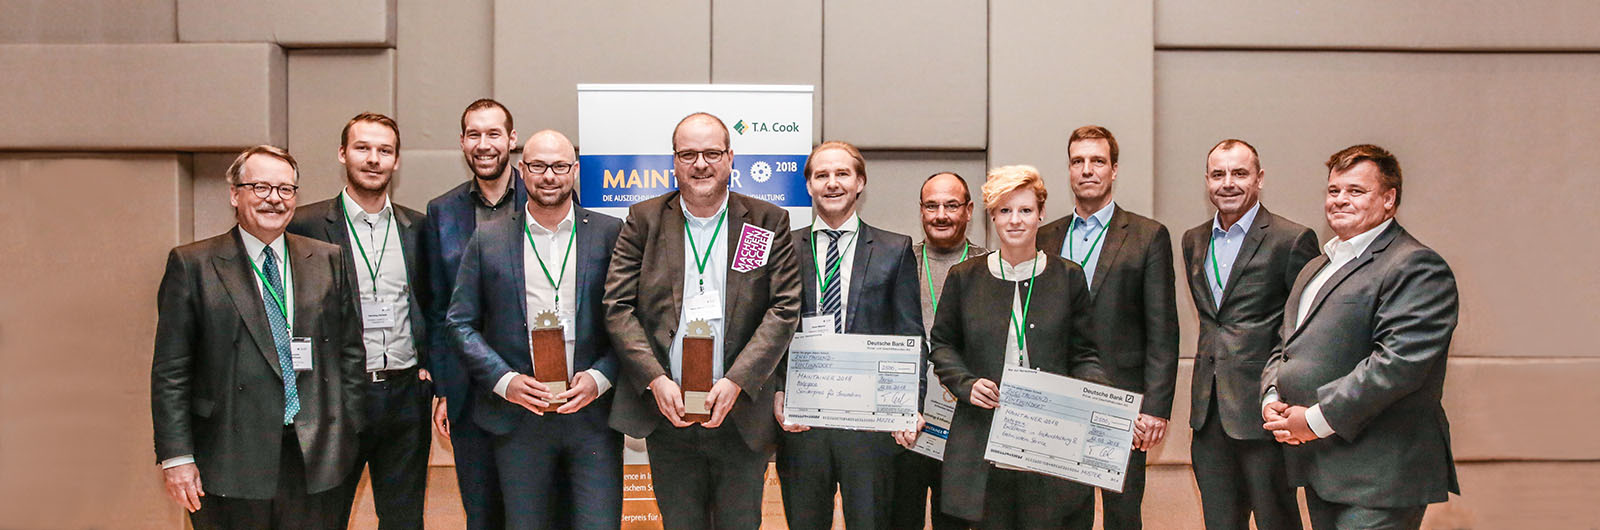 MAINTAINER Award - die Gewinner